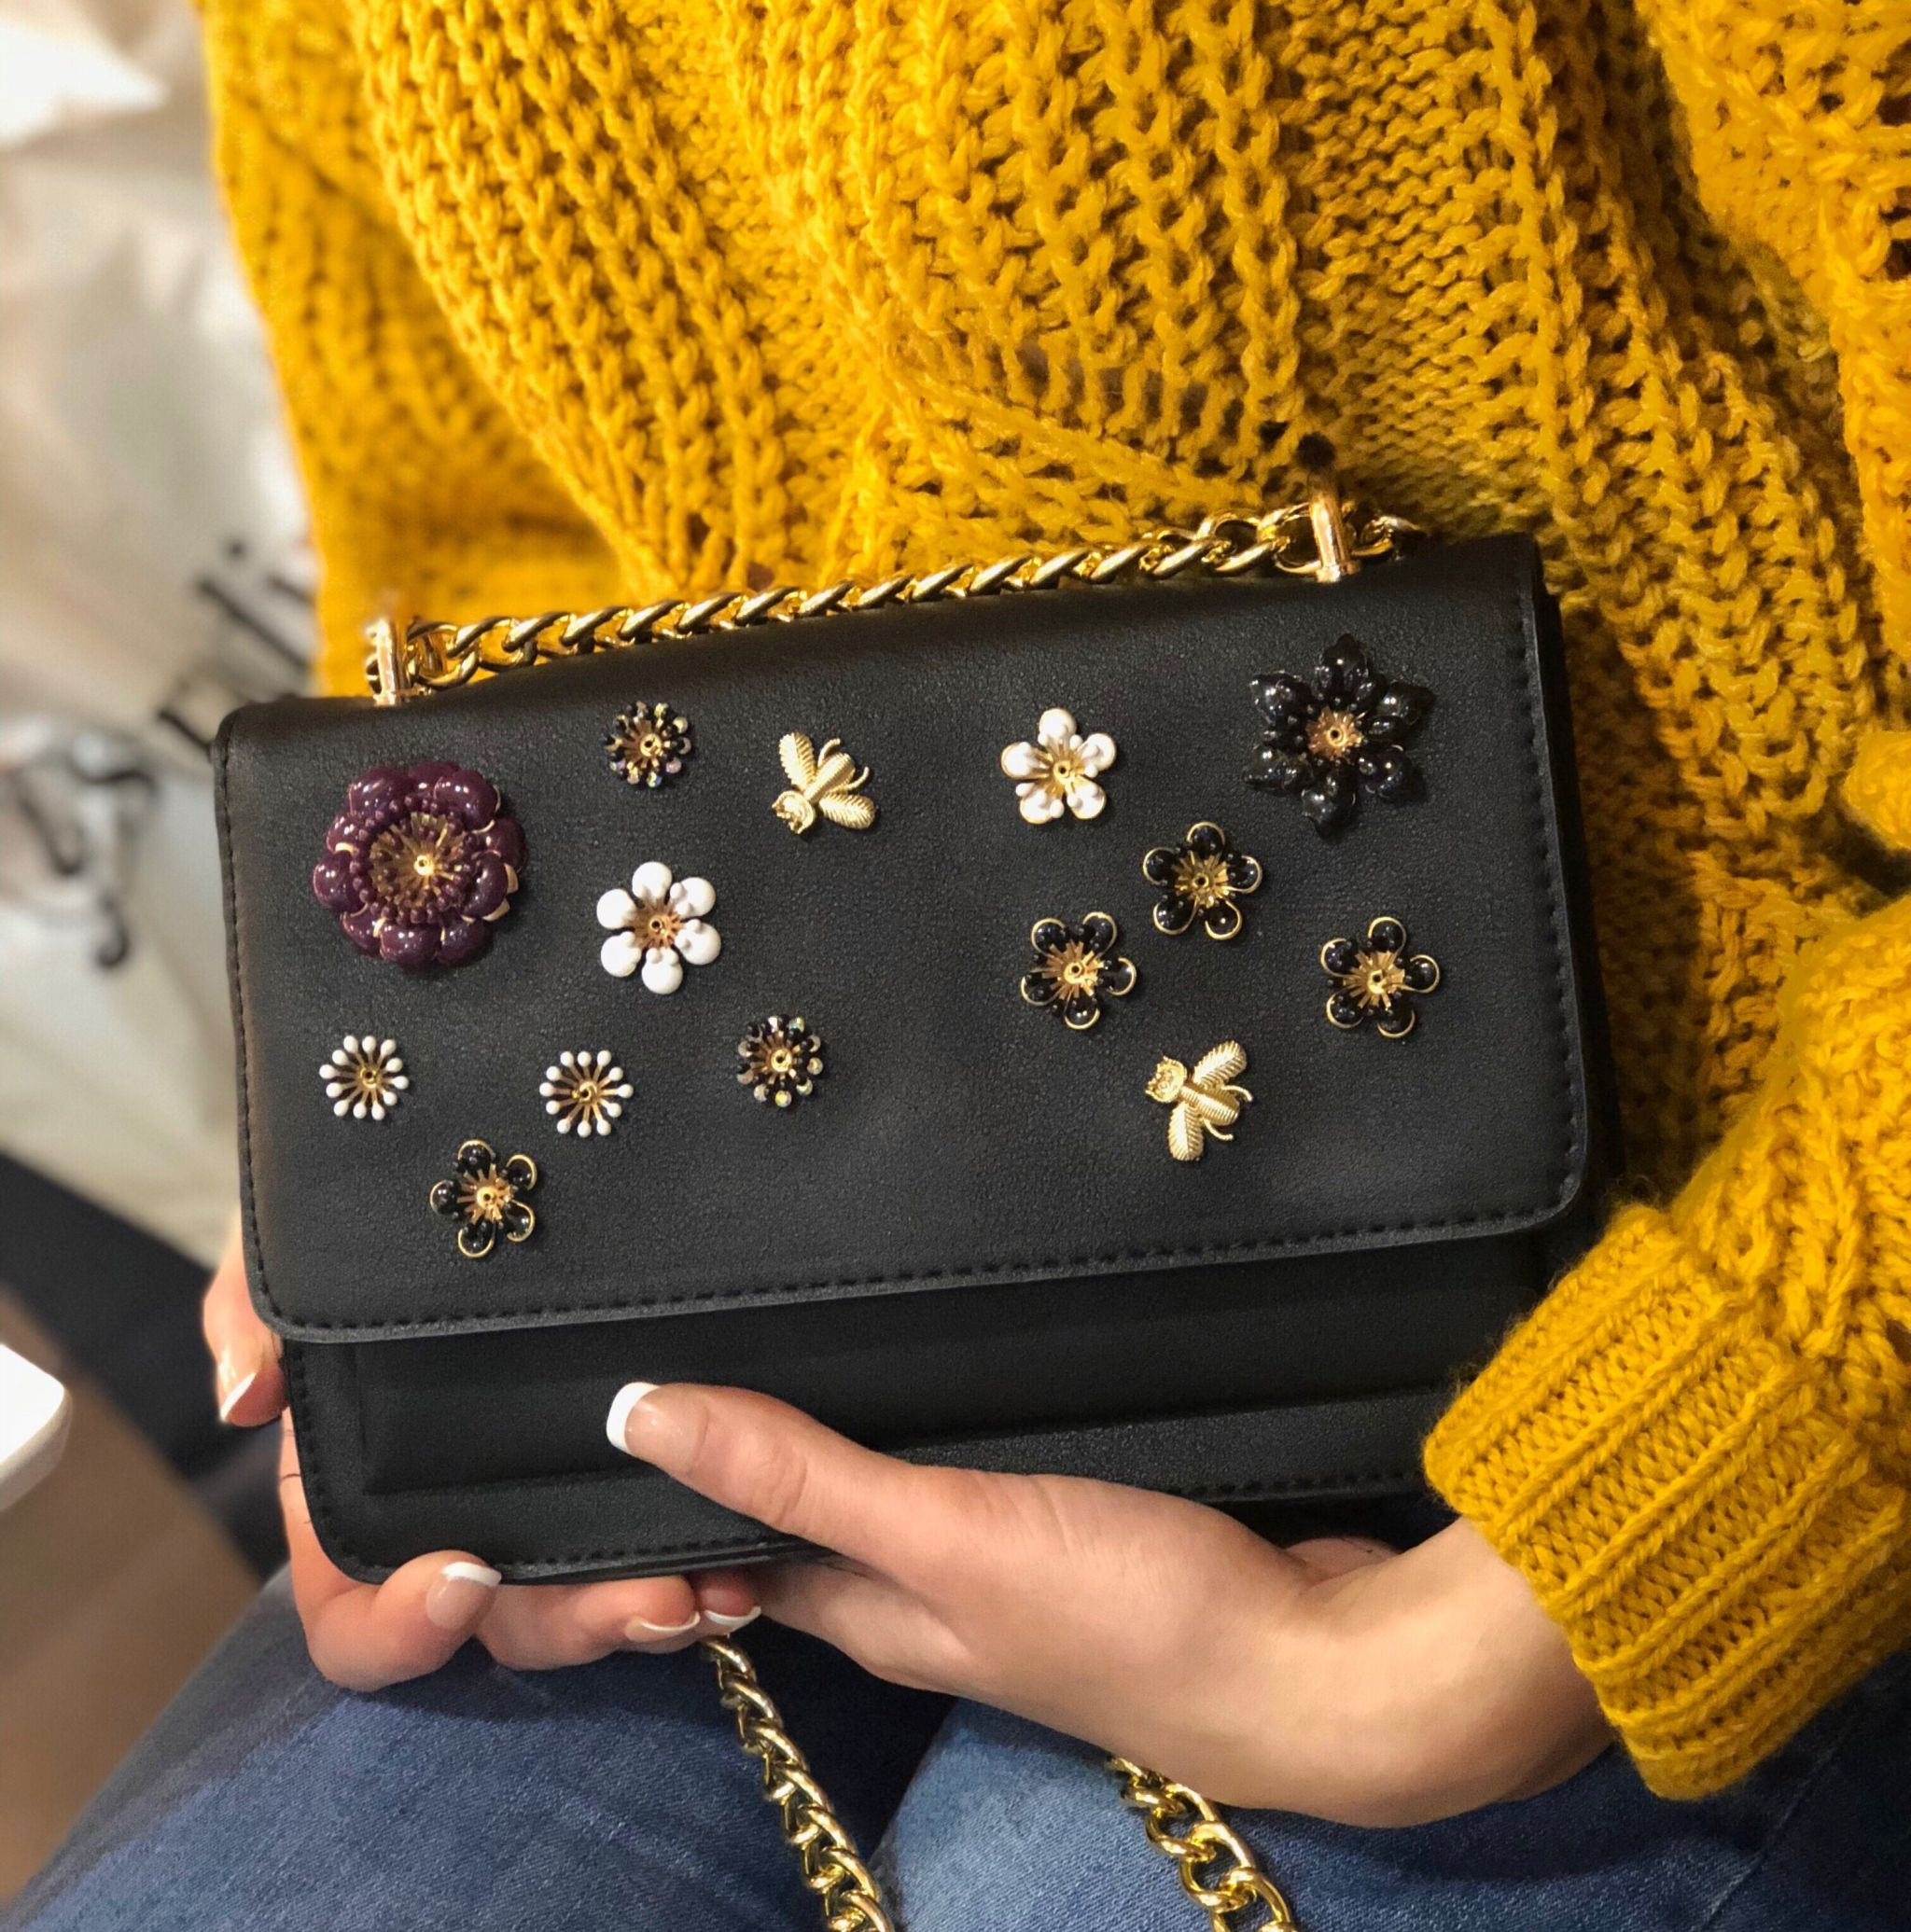 miniature embellished bag 5 must have items in your wardrobe this Spring